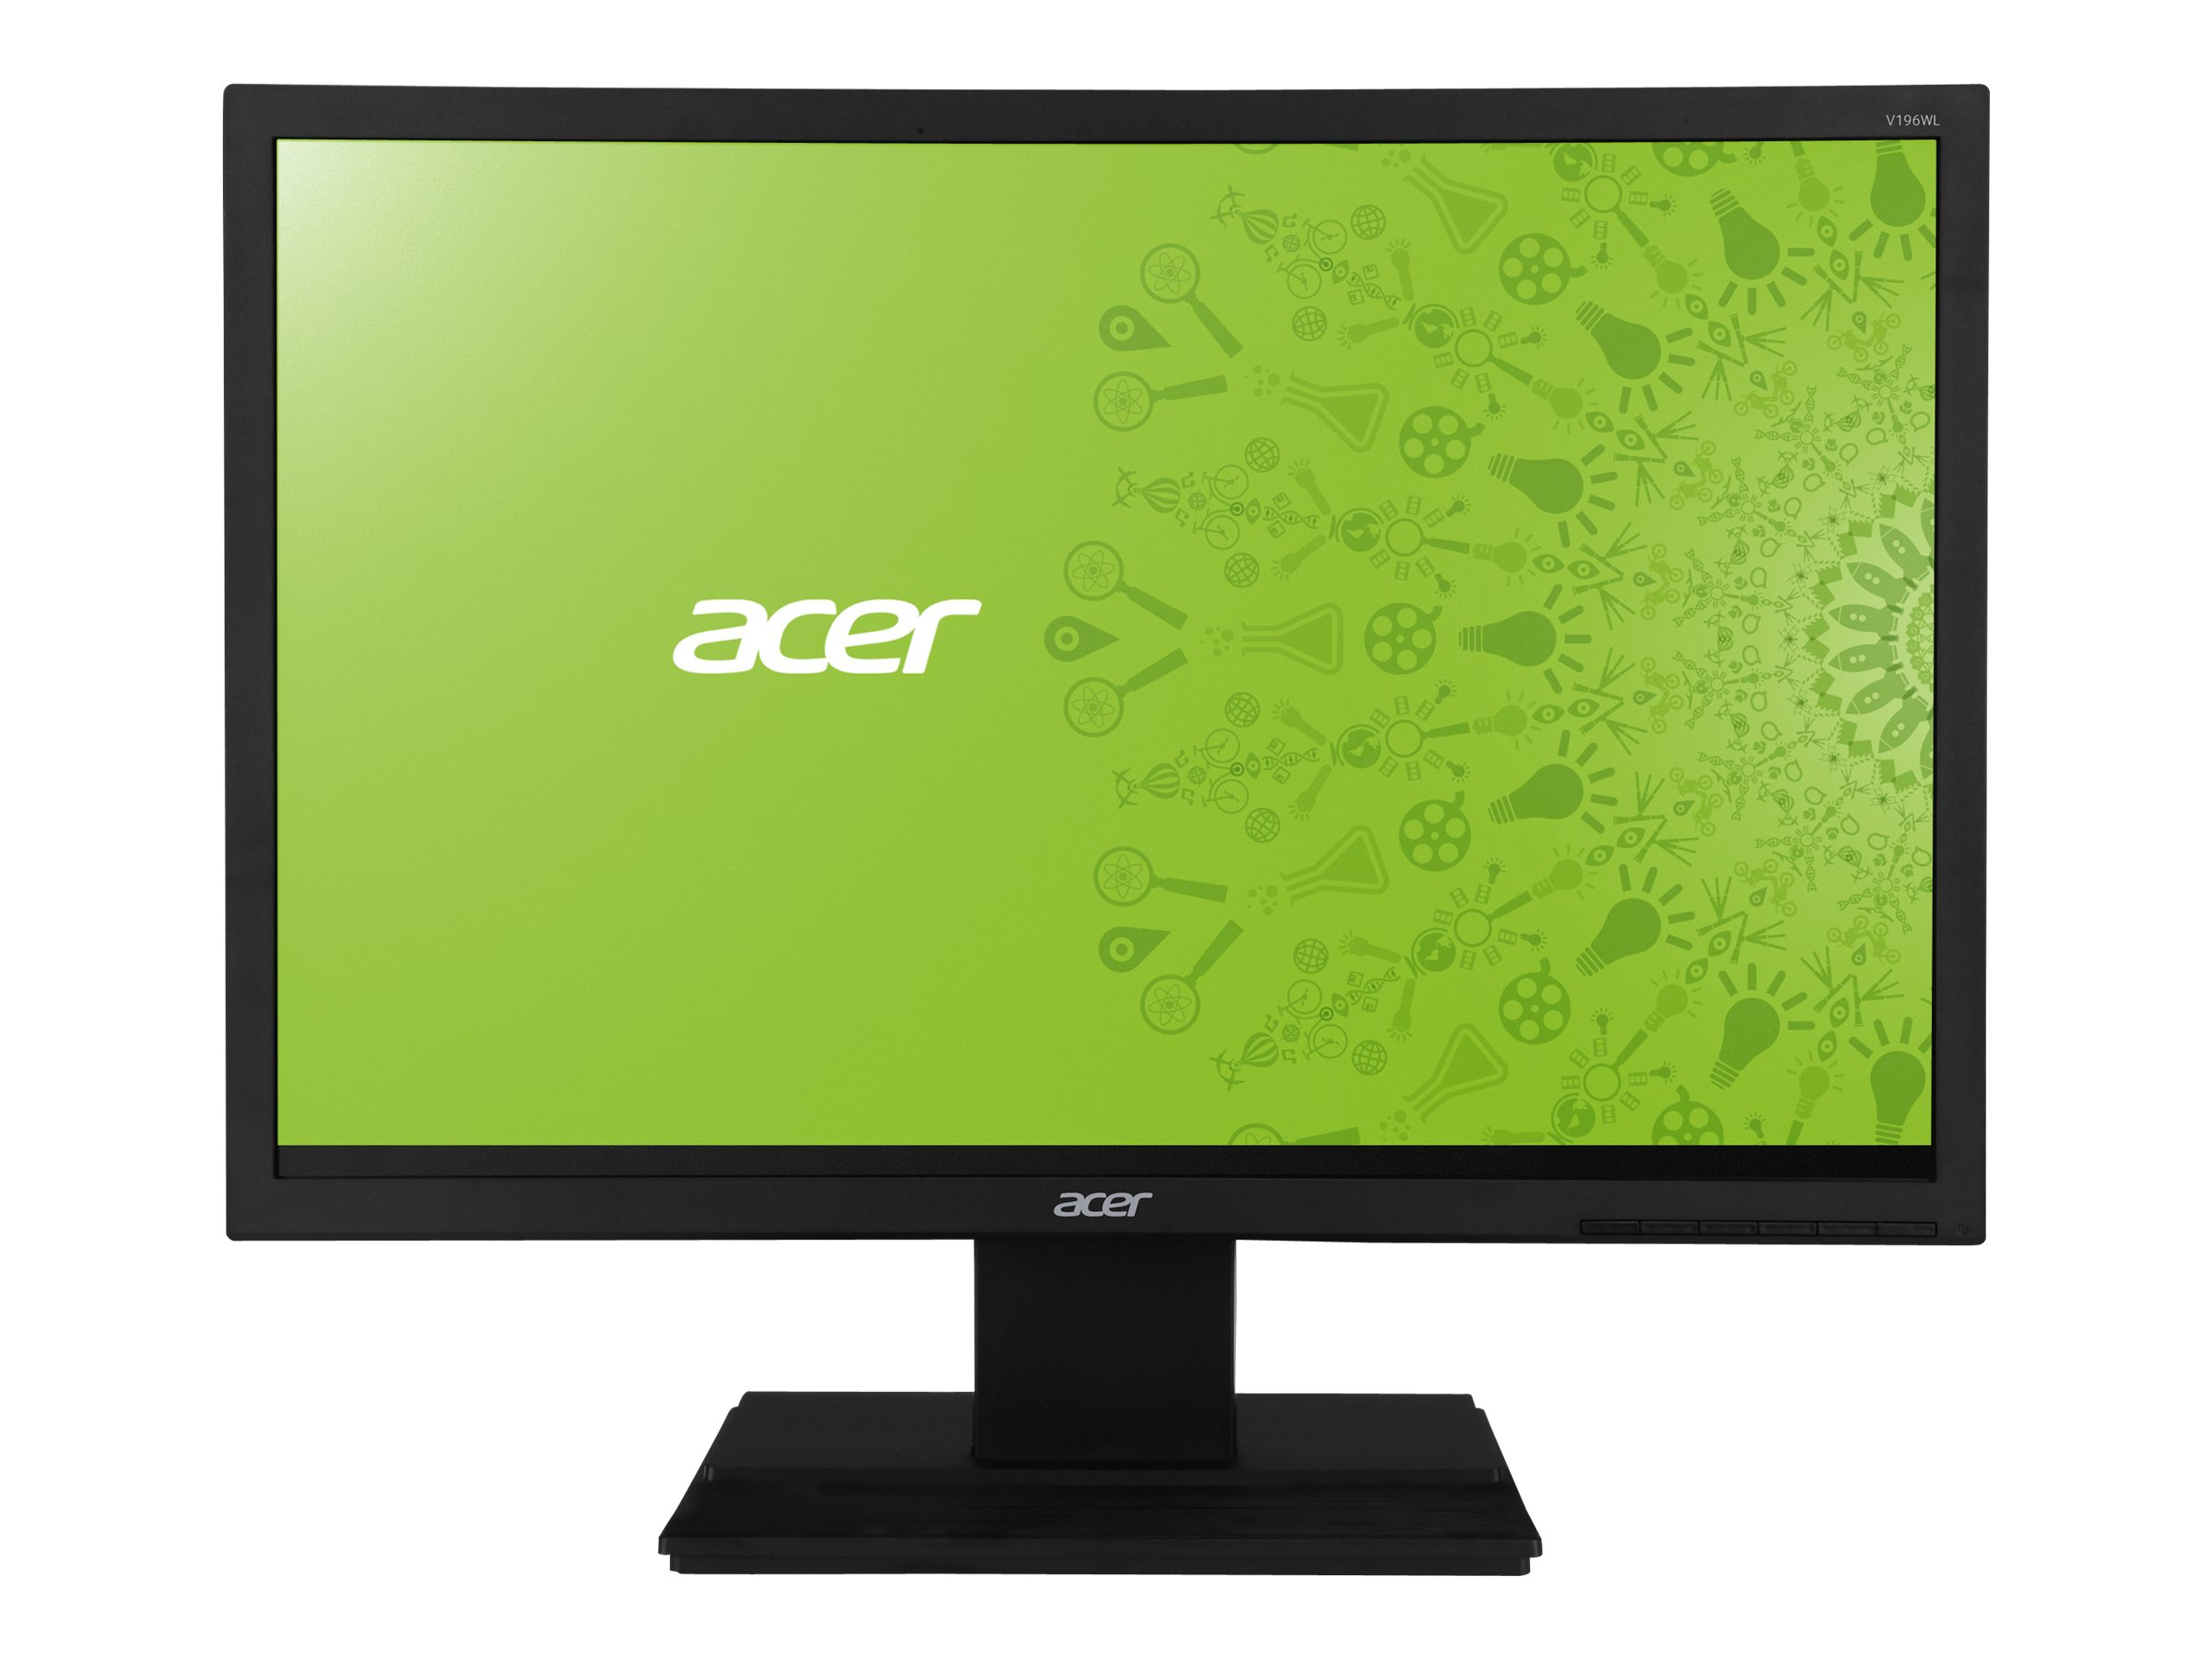 Acer 19 V196WL BM LED-LCD Monitor, Black, UM.CV6AA.003, 15482954, Monitors - LED-LCD